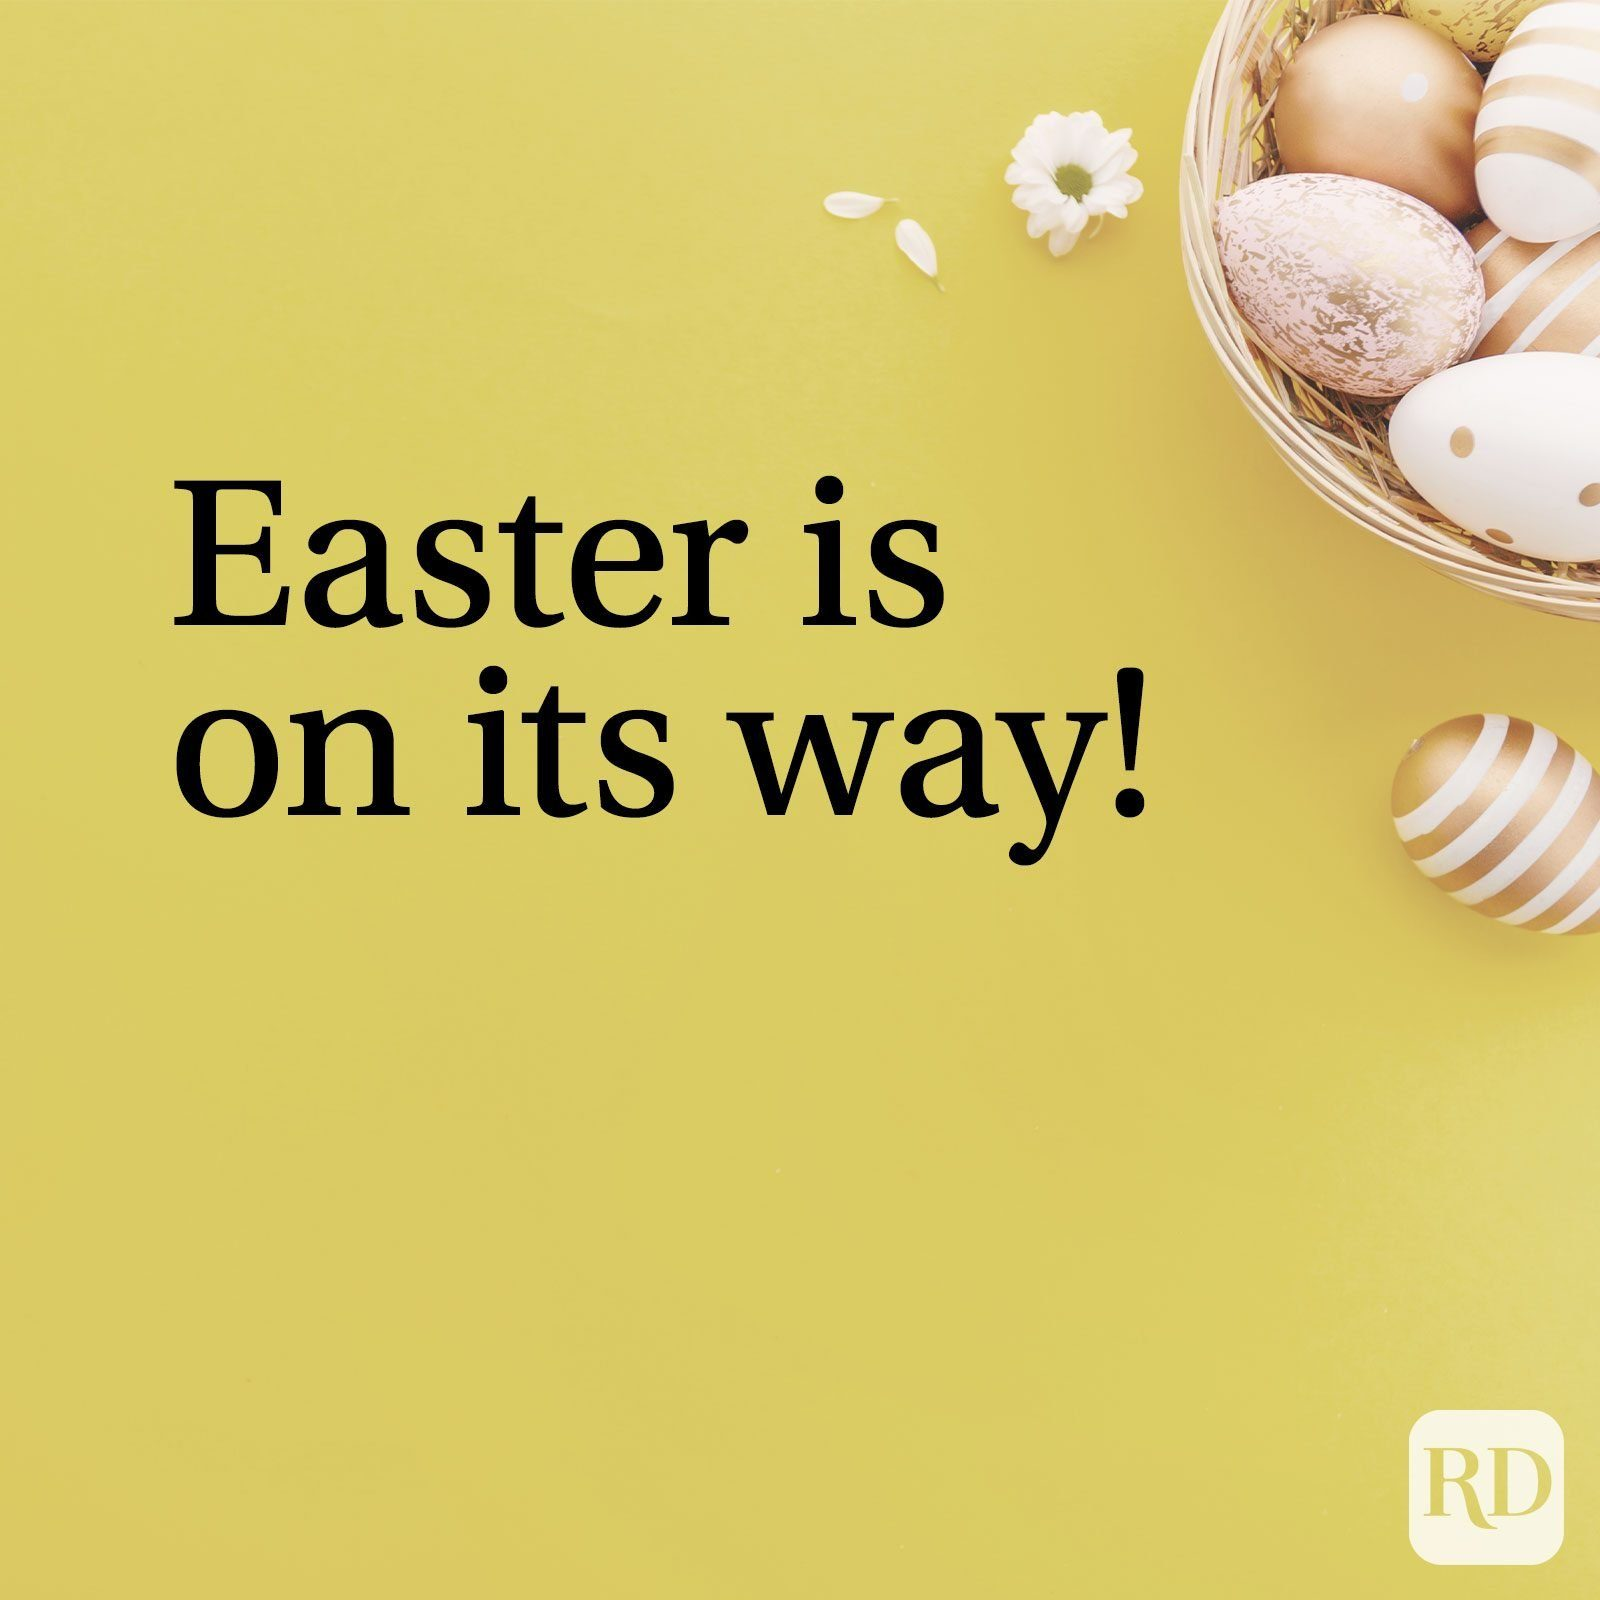 Easter eggs and flowers with text: Easter is on its way!